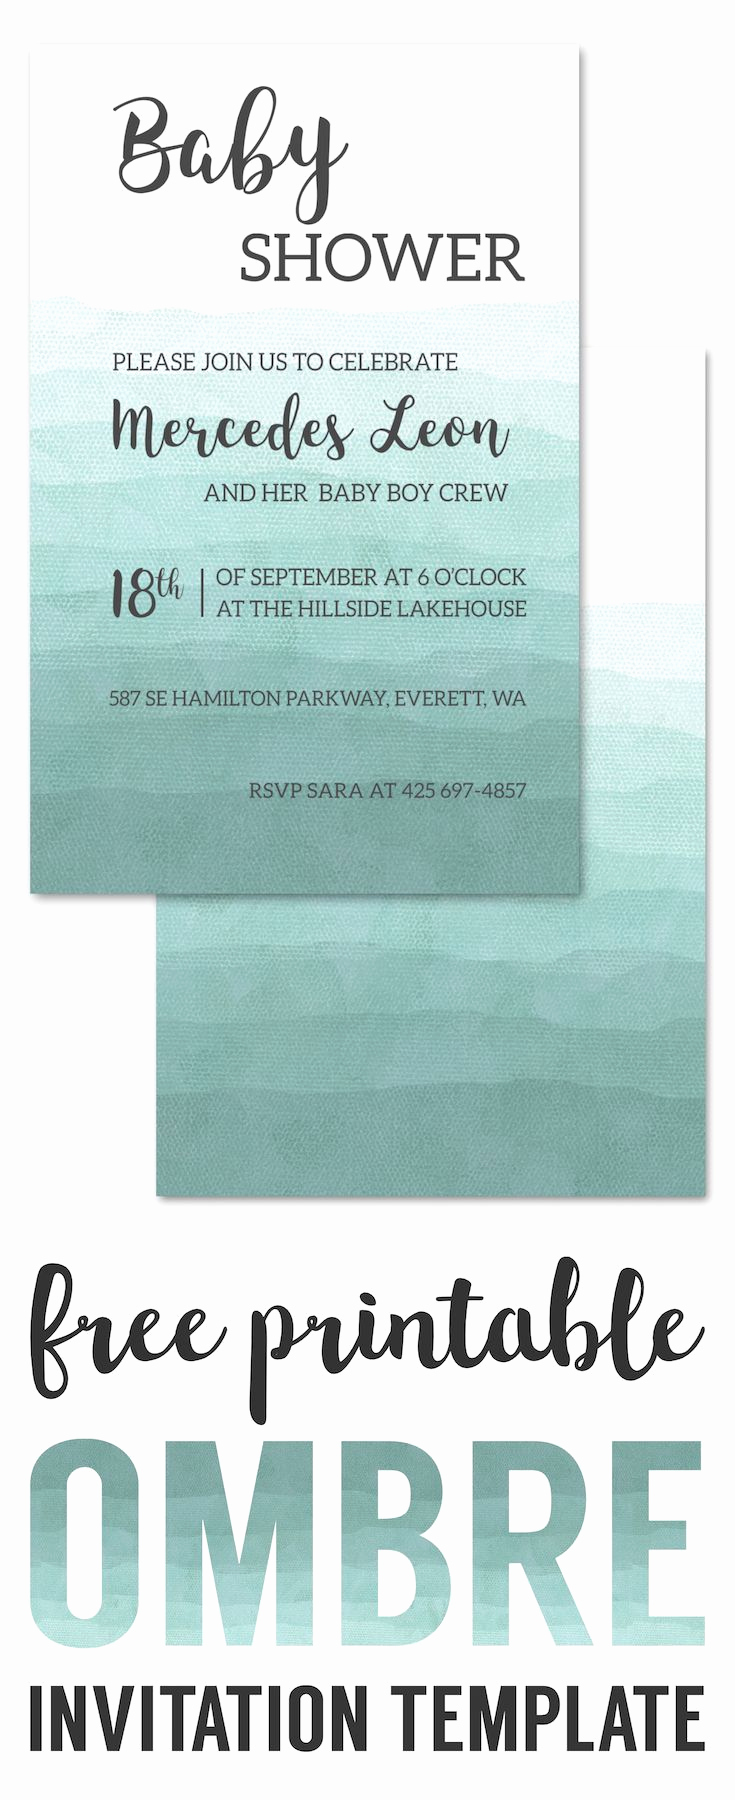 Printable Baby Shower Invitation Templates Inspirational 25 Unique Baby Shower Invitation Templates Ideas On